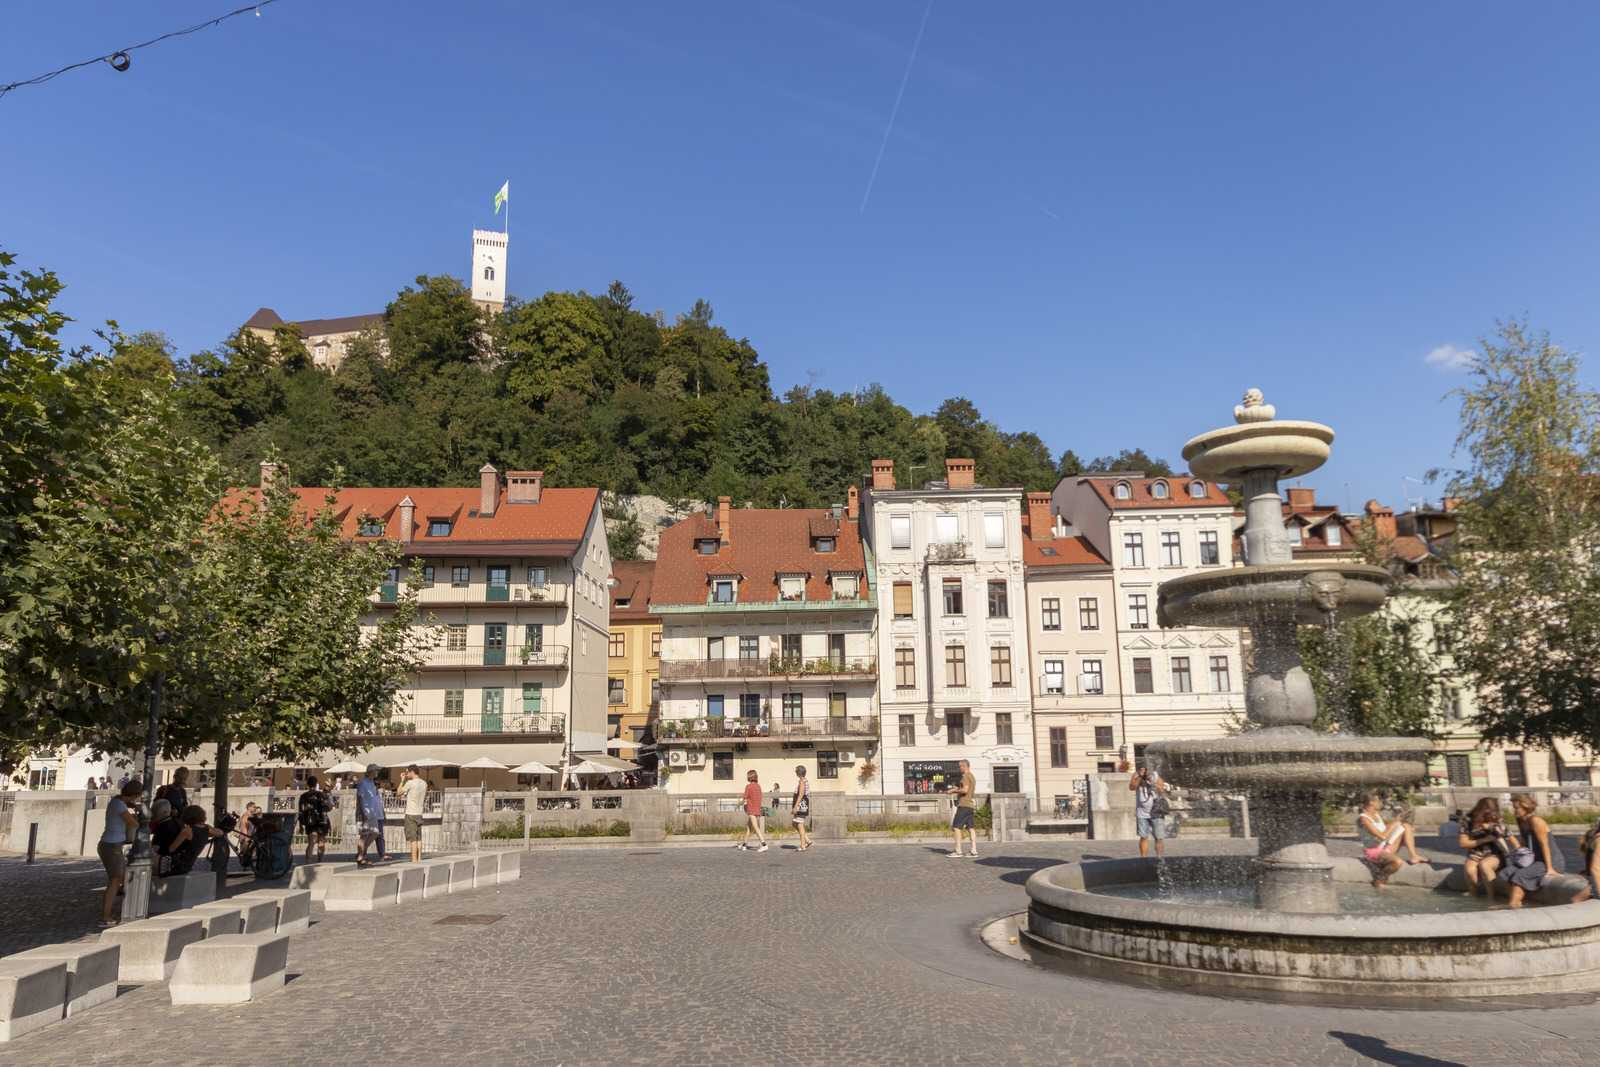 This is the view of the fountain and the Ljubljana Castle hill from across the river.